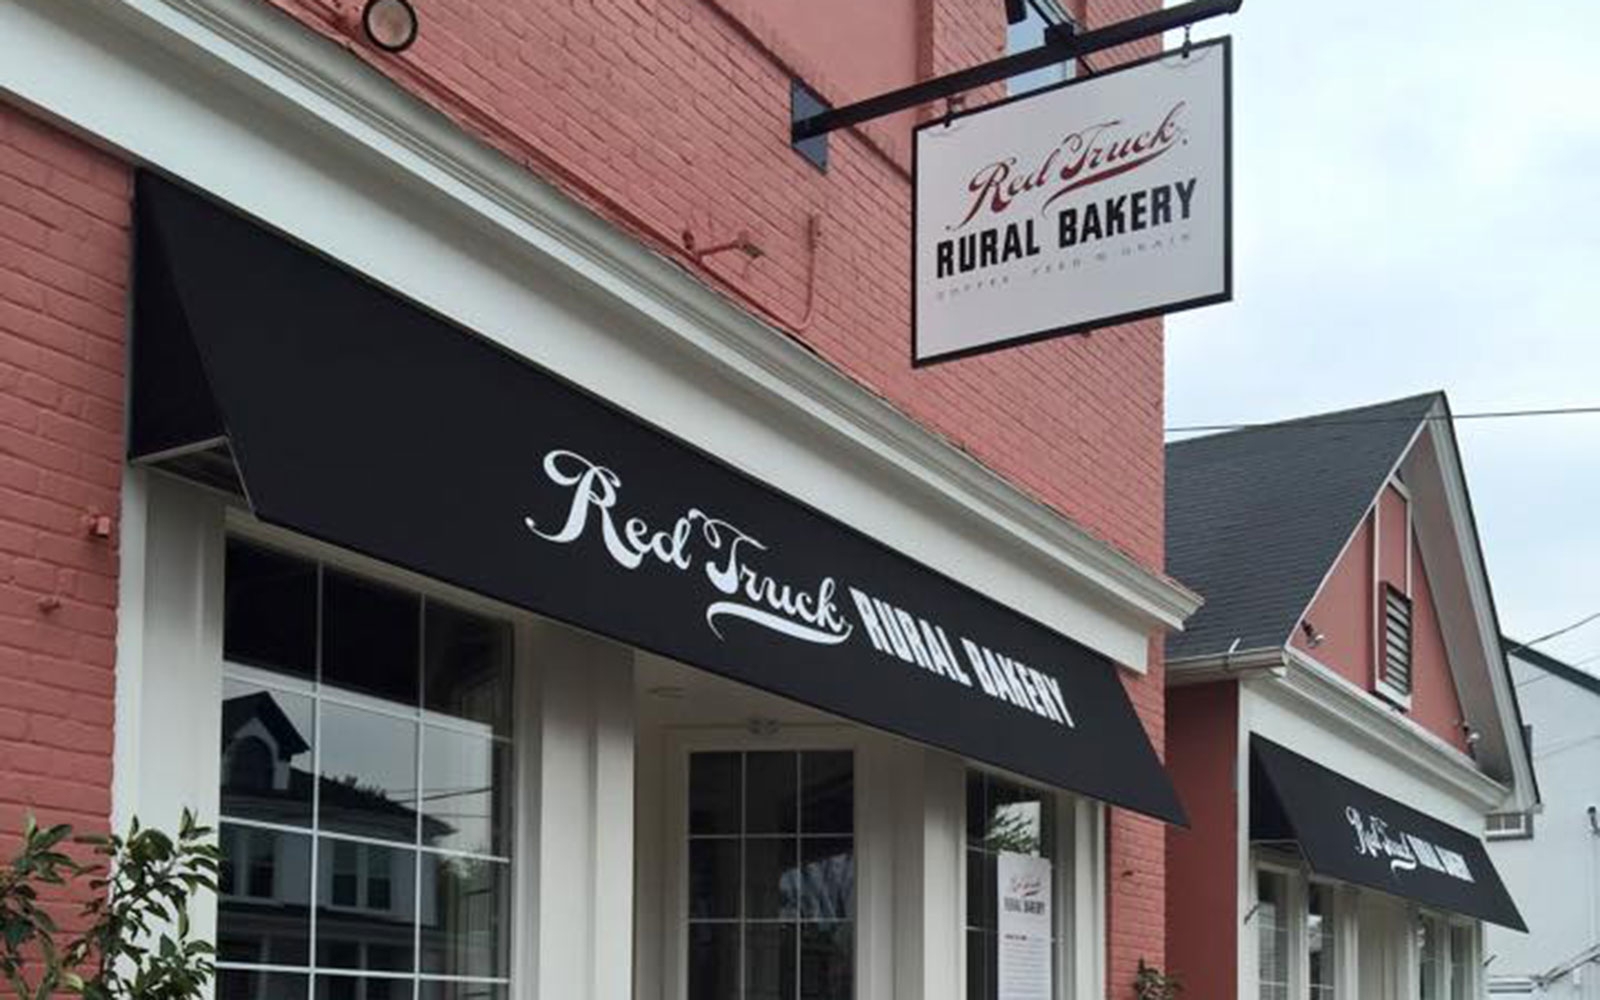 Red Truck Bakery in Warrenton, Virginia